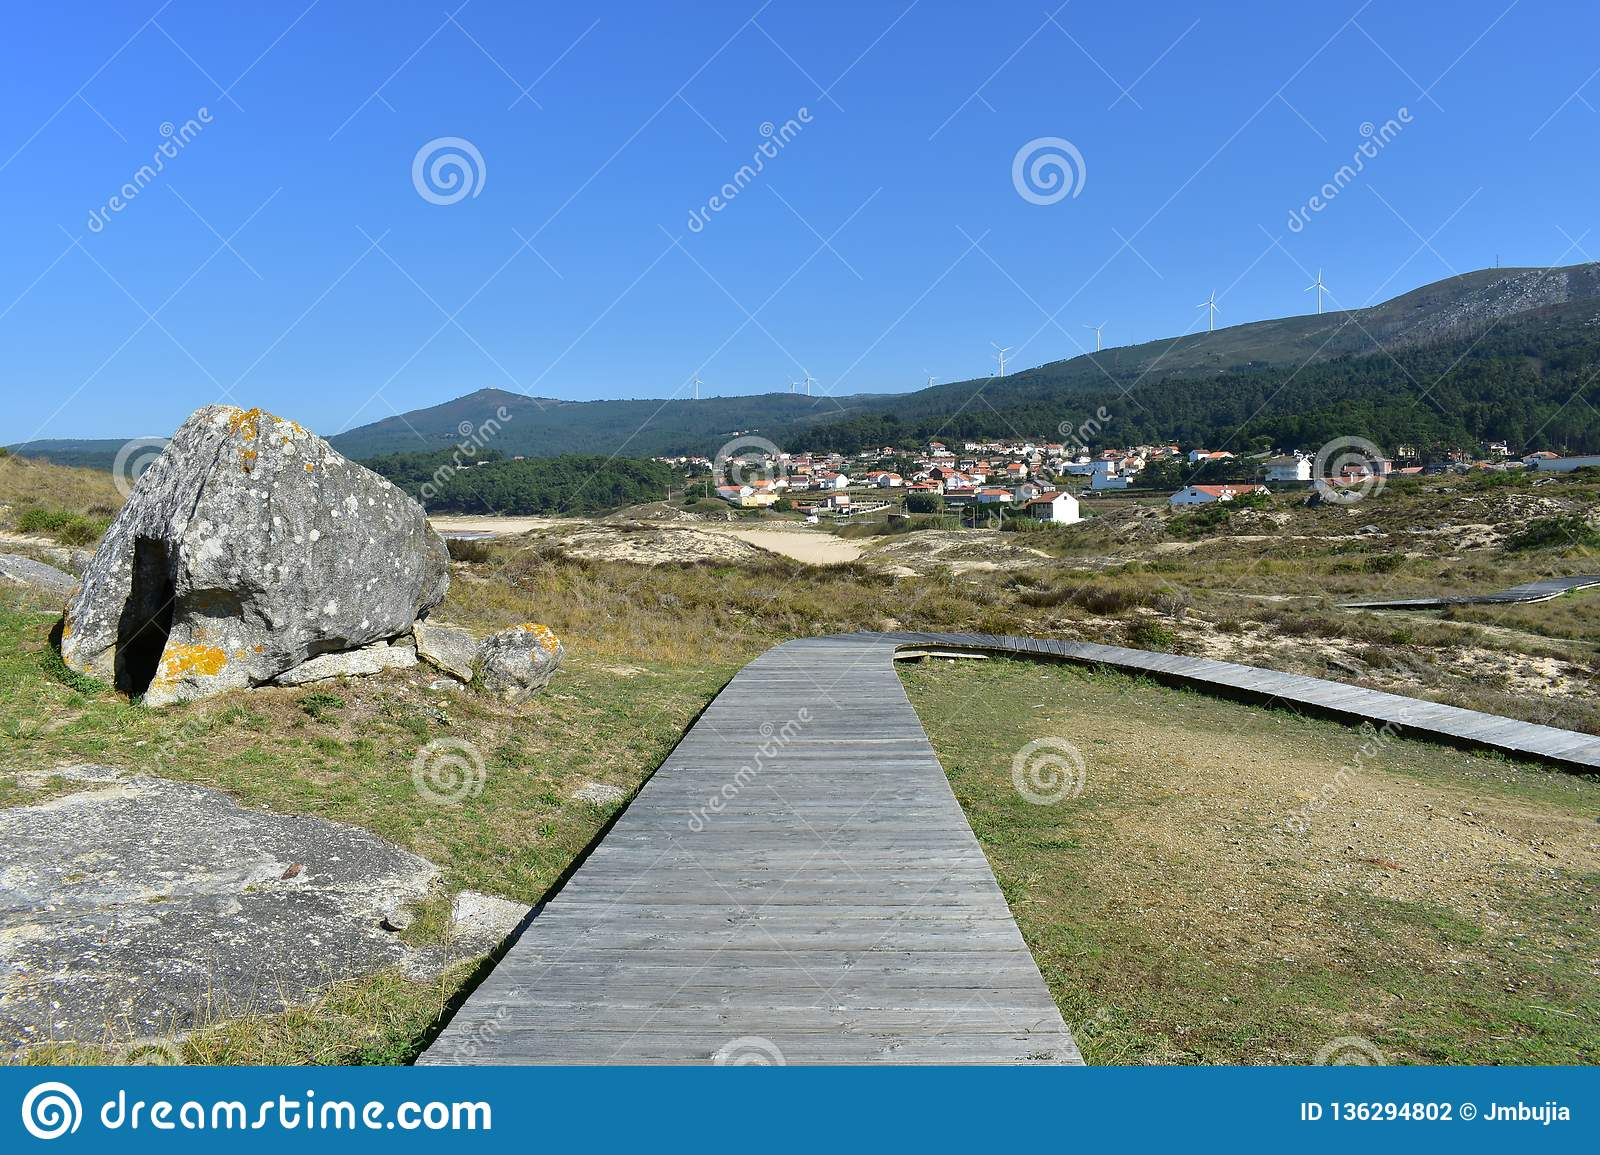 Beach with wooden boardwalk and big sand dunes. Small mountain with forest and coastal village. Blue sky, sunny day. Galicia, Spai